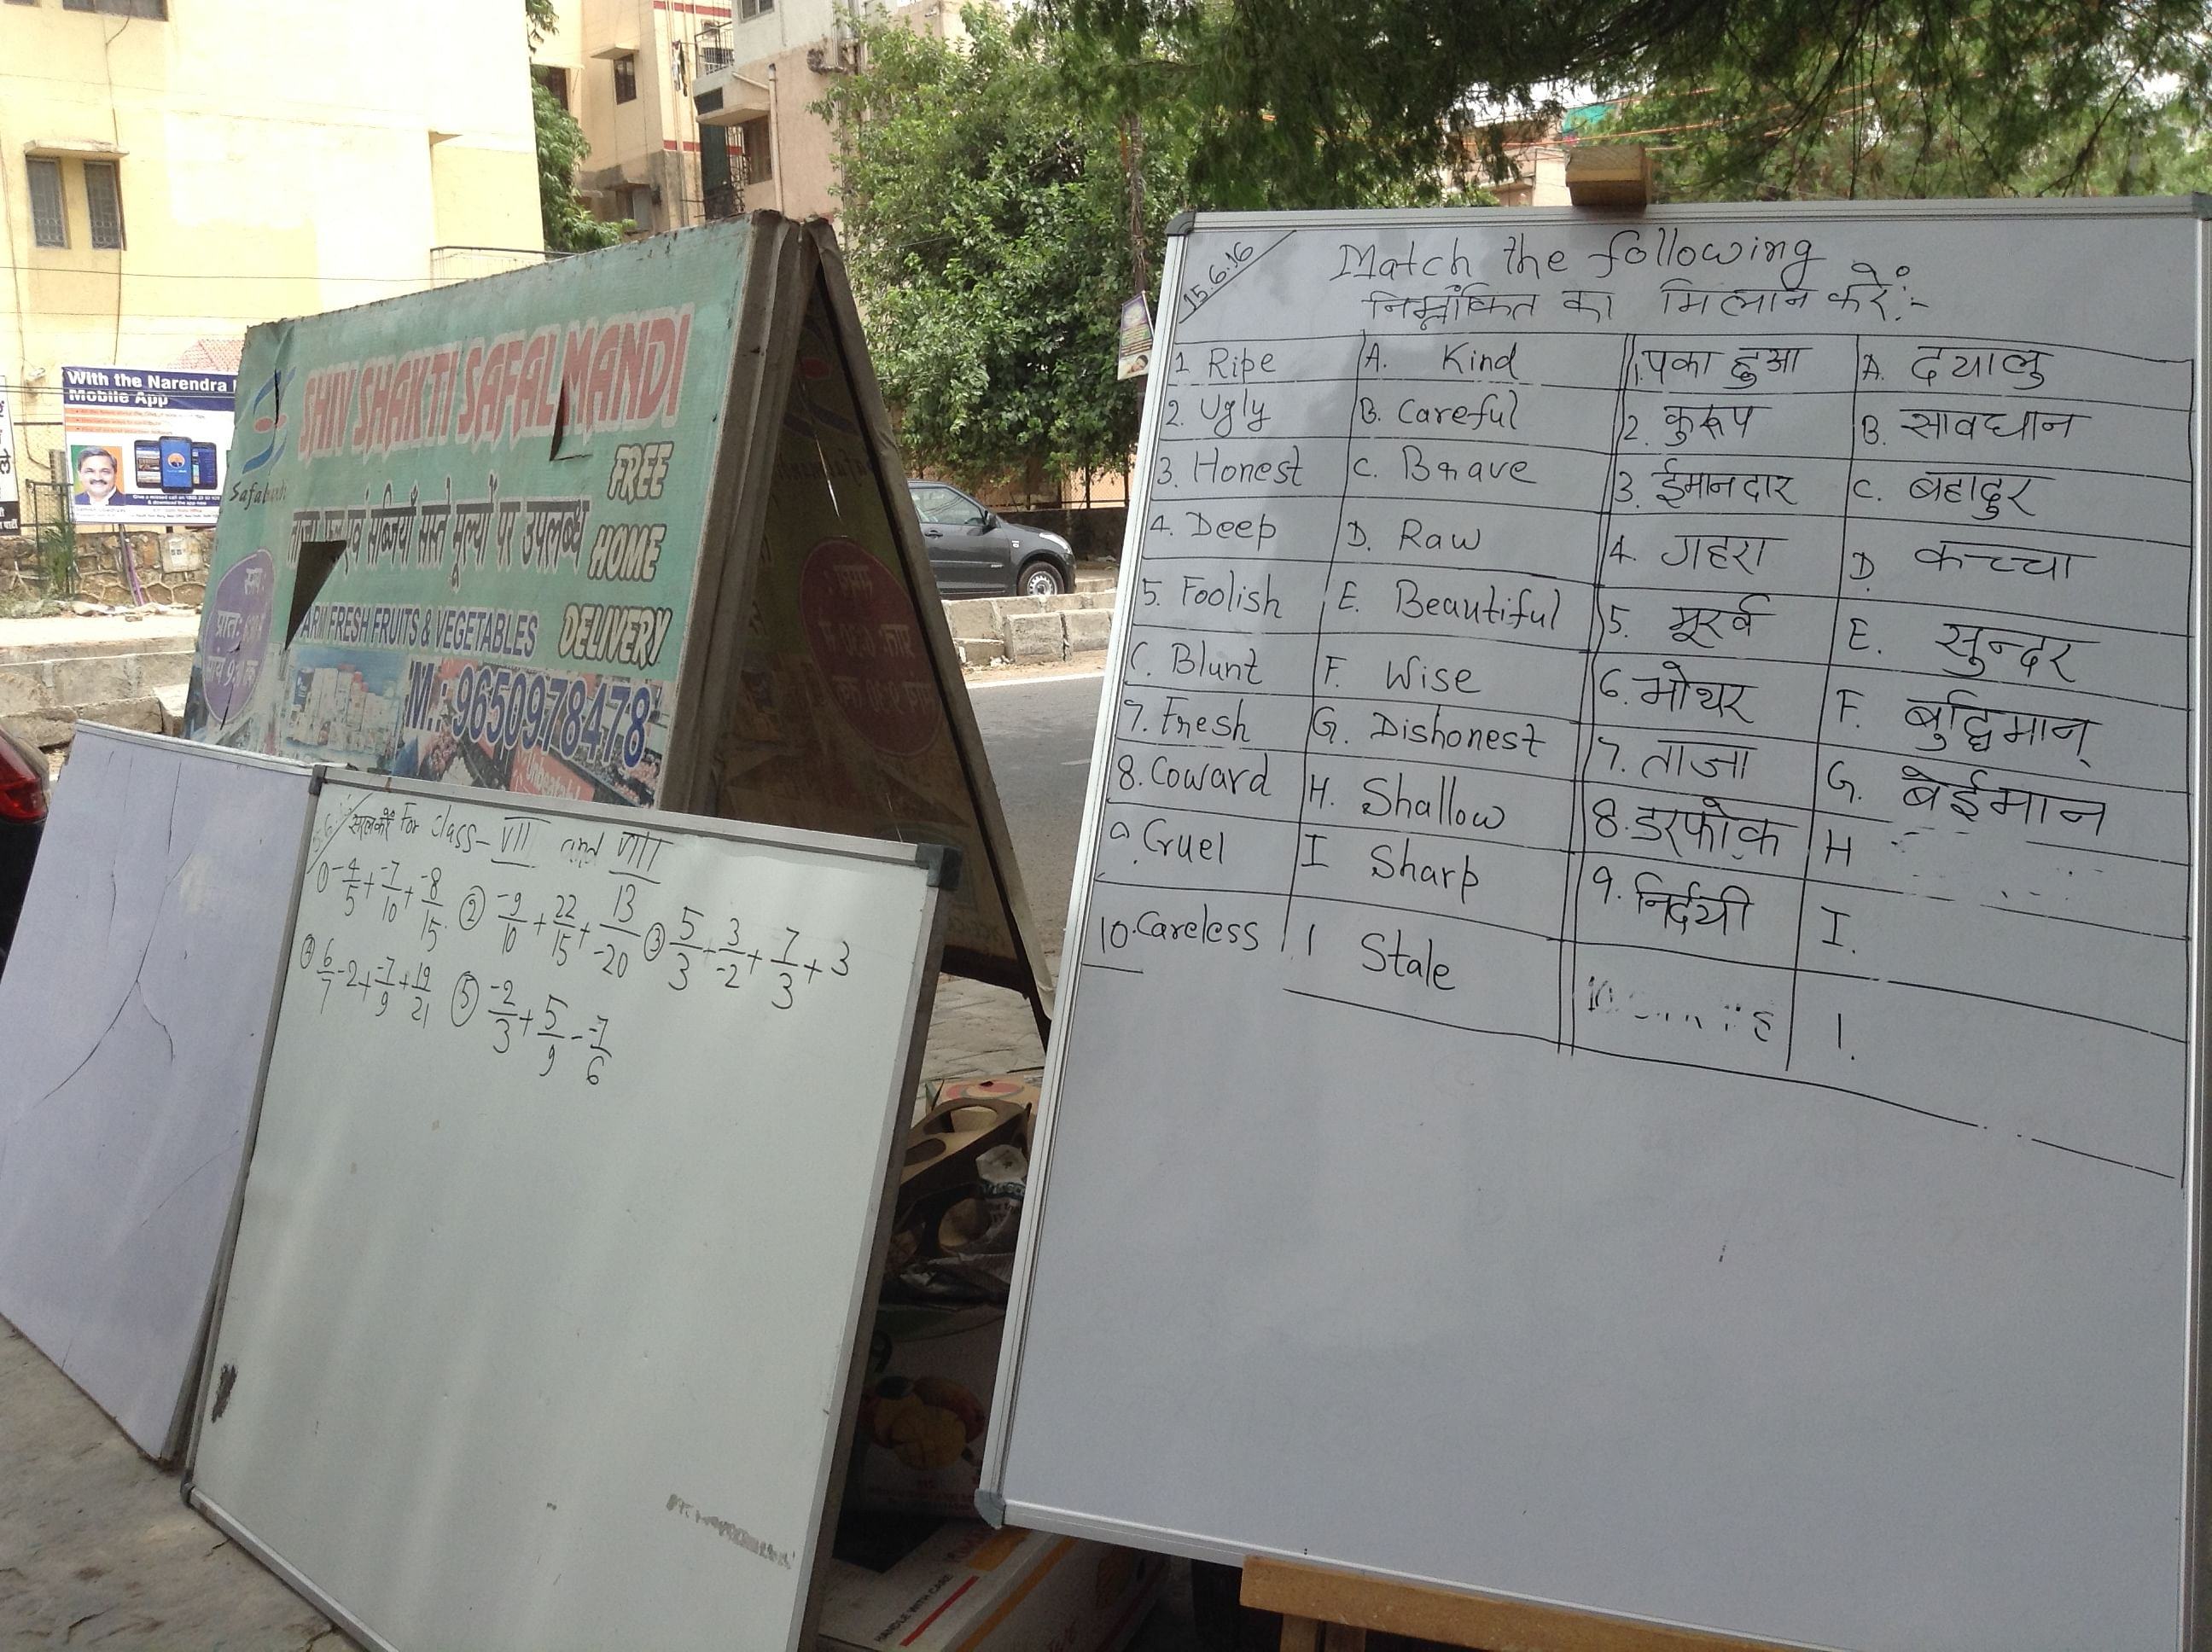 These boards, the pens, the dusters and stands are donated by local people